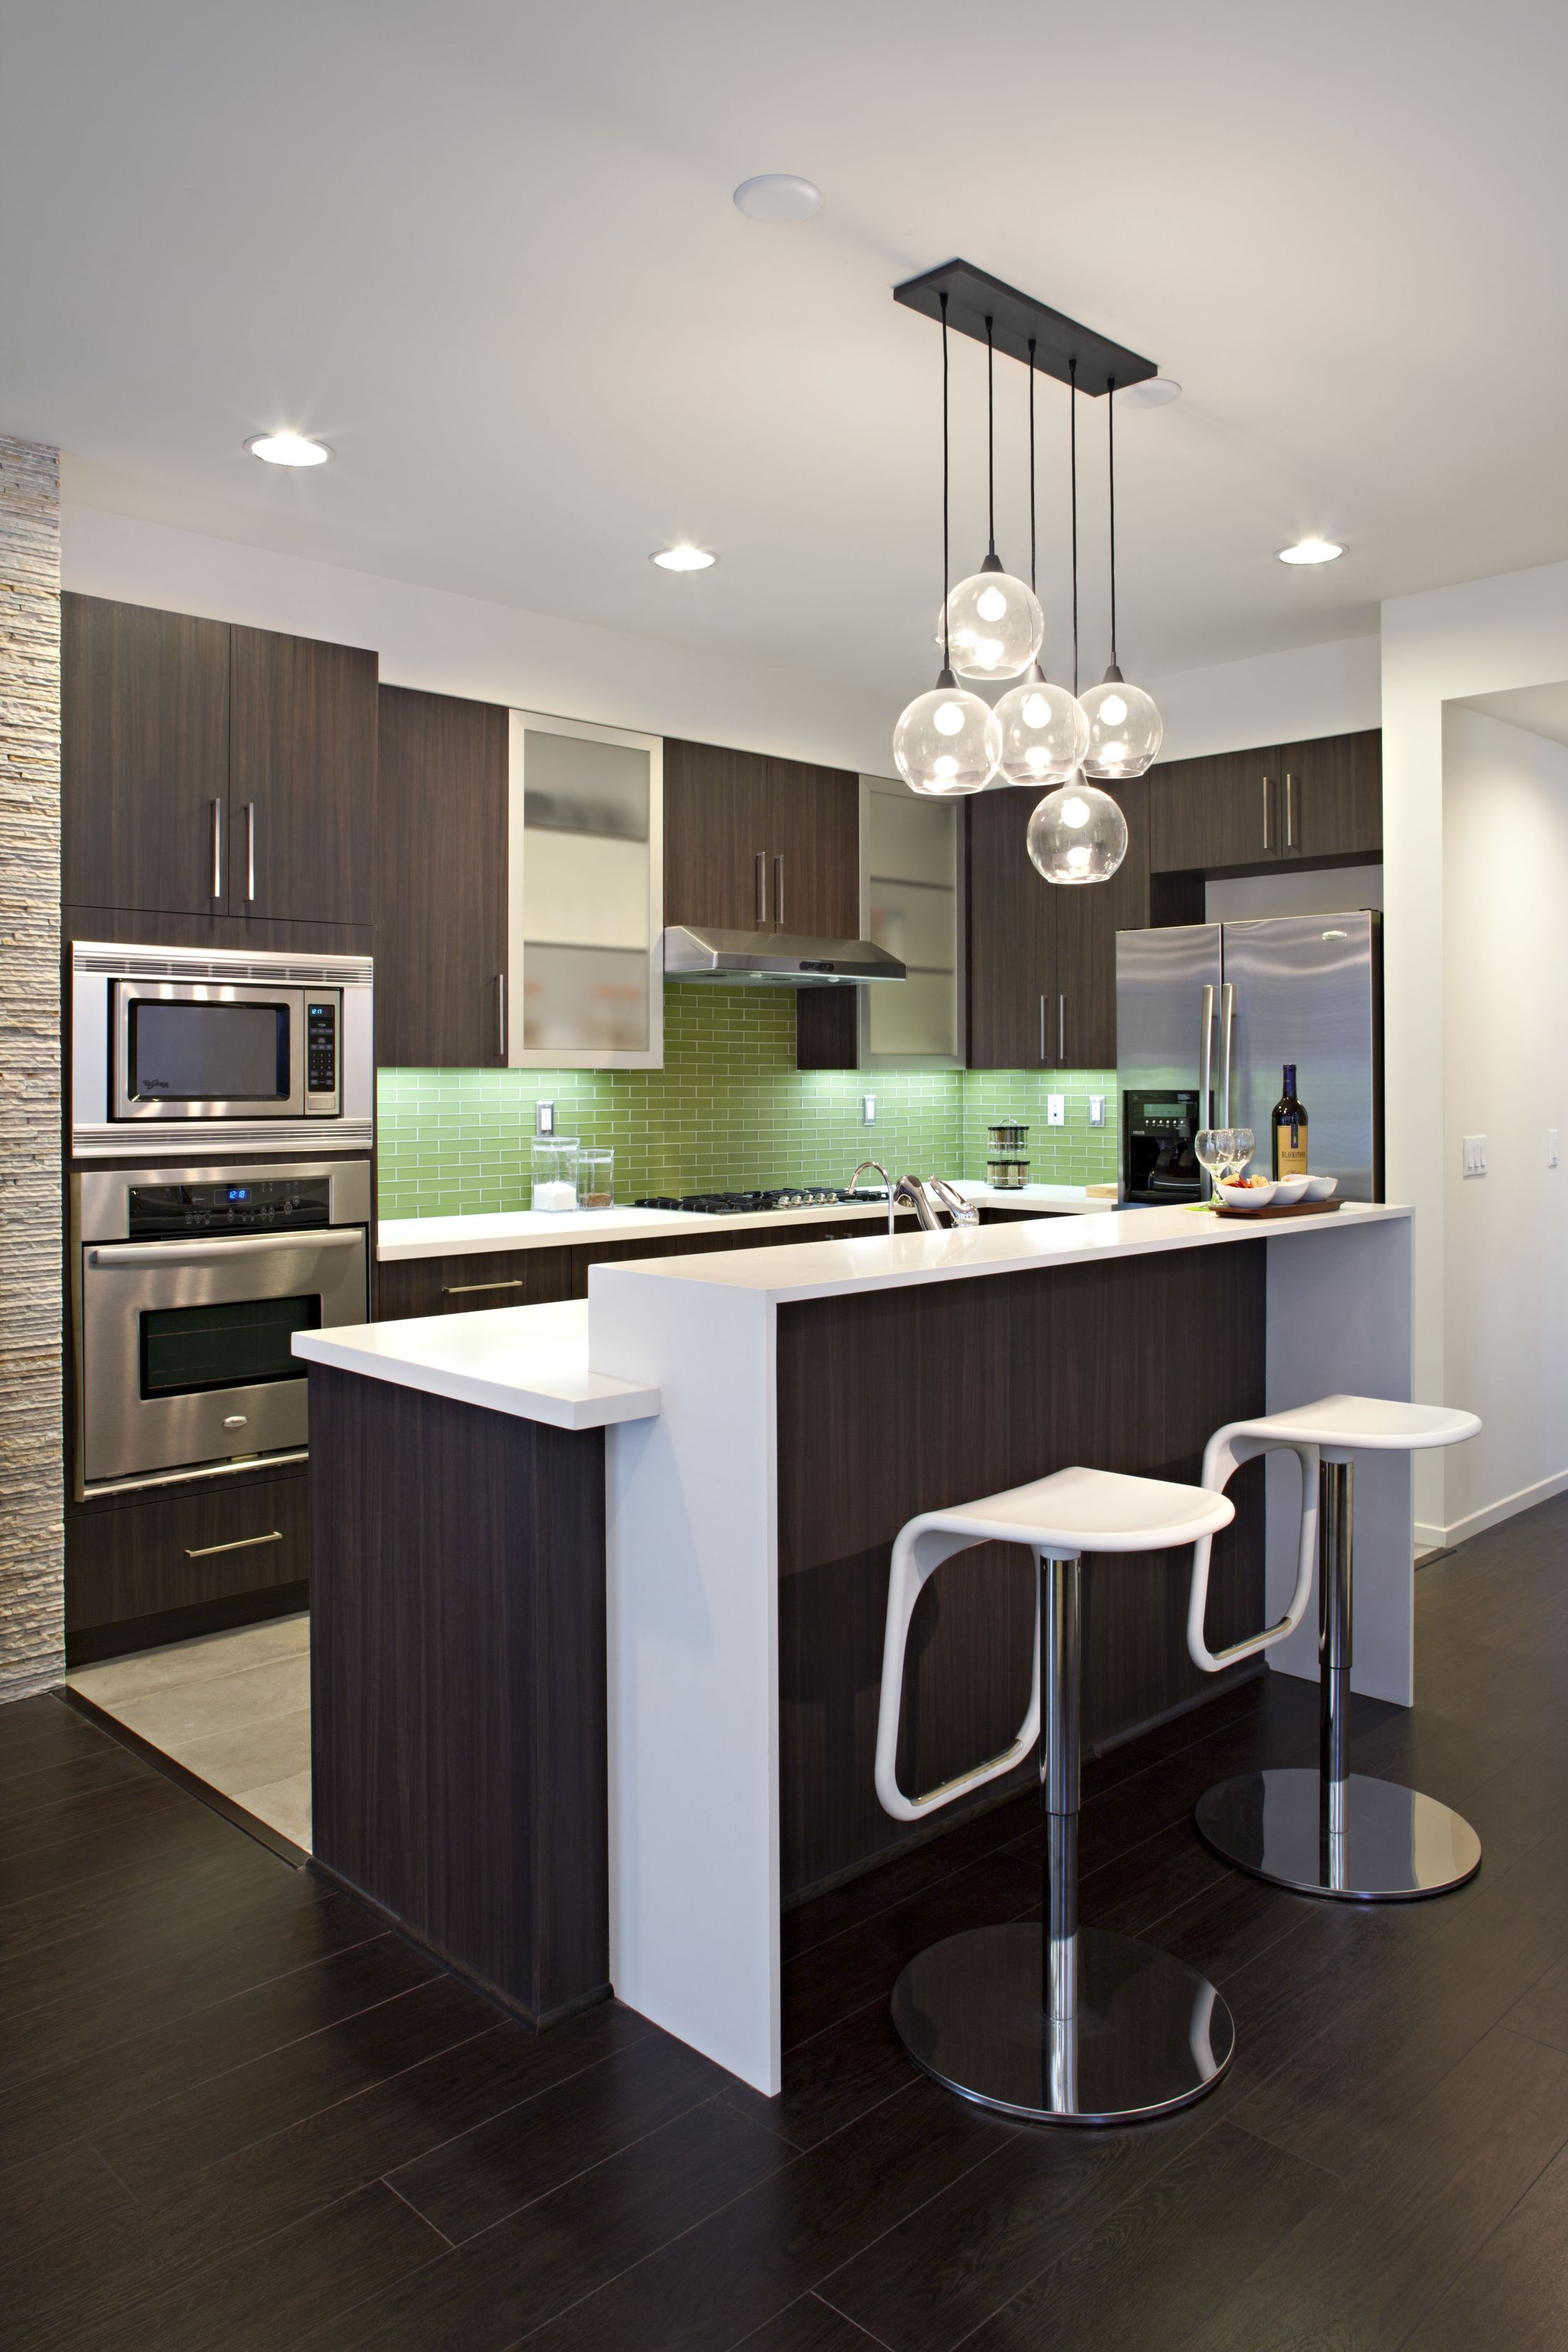 Pebble creek lane contemporary kitchen images by elan